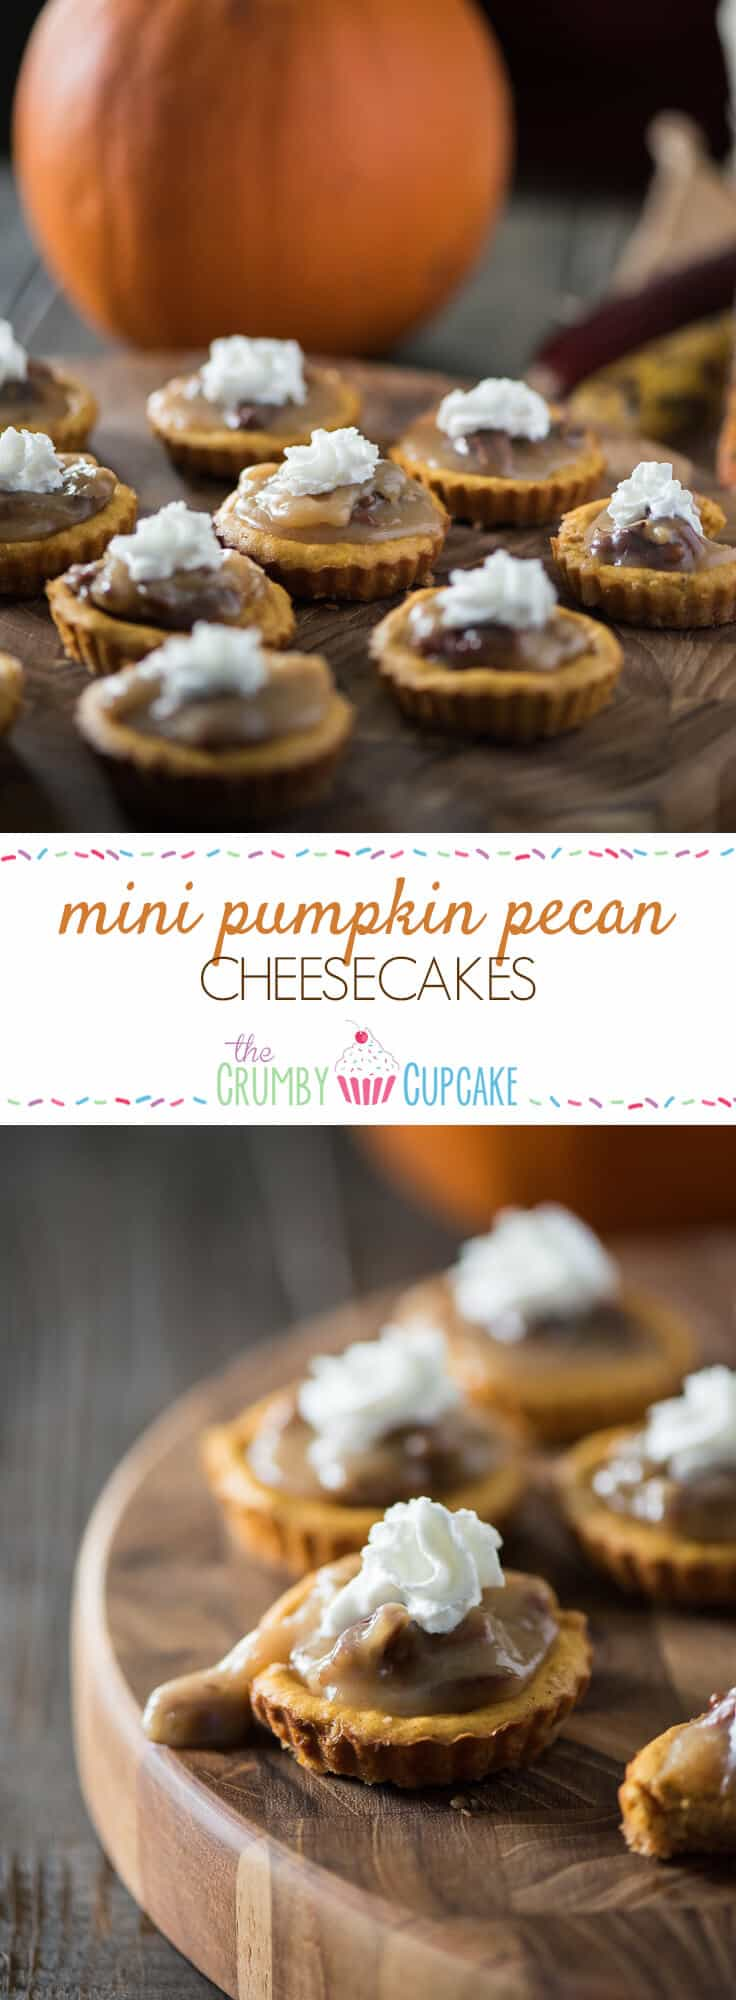 These adorable Mini Pumpkin Pecan Cheesecakes make indulgence nearly guilt-free! Tart-sized pumpkin cheesecakes topped with a praline pecan sauce and whipped cream are a seasonal two-bite treat!